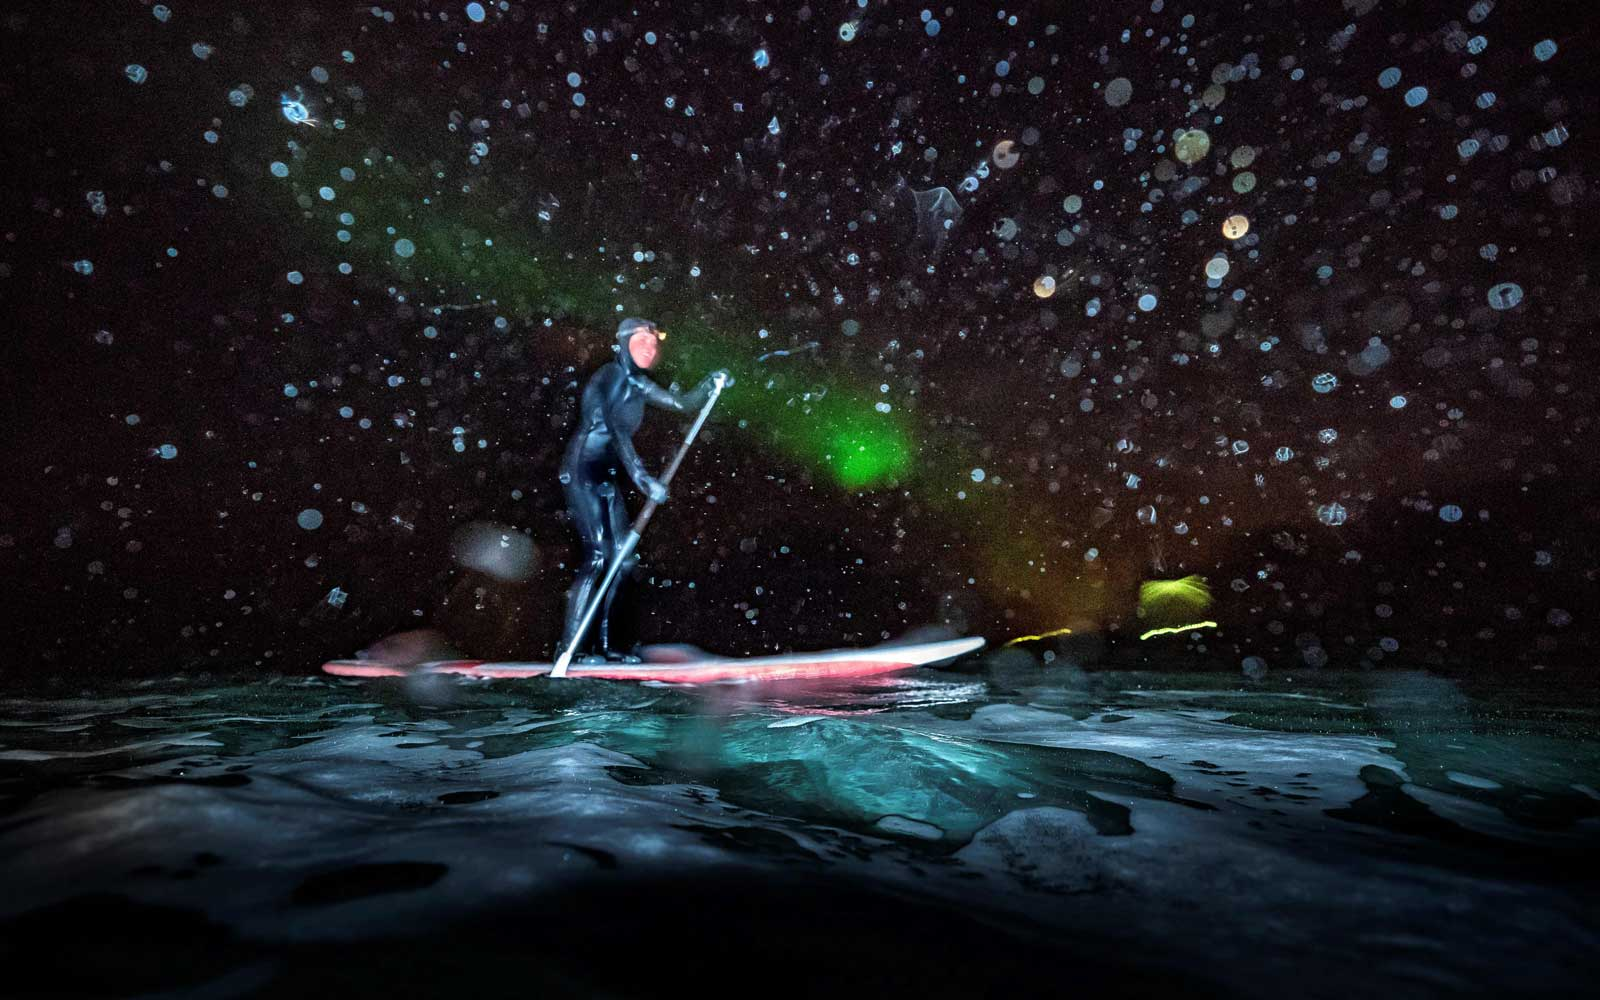 Myrtille Heissat from France rides a SUP (Stand Upp Paddle) under Northern Lights, on March 8, 2018 in Unstad northern Norway, Lofoten islands, within the Arctic Circle.